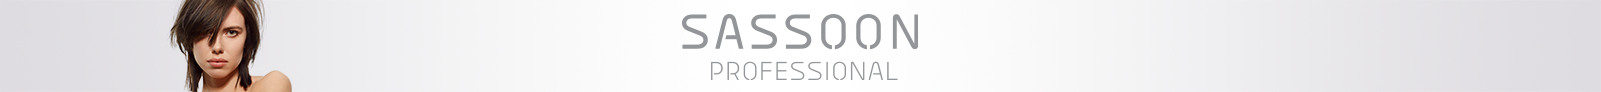 PNG_LowRes-Wellastore_Sassoon_Subcategory-Banner_Professional_1601x92.png